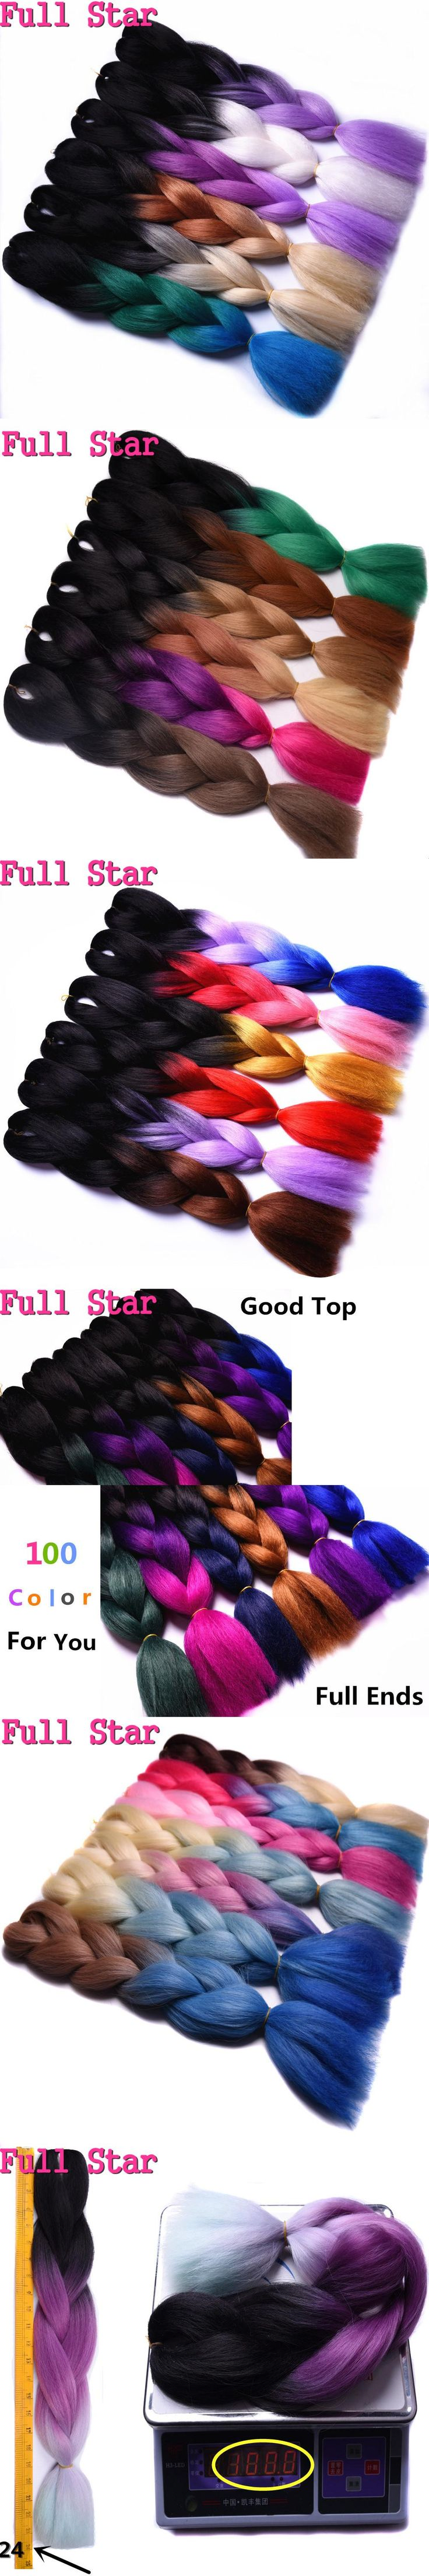 Full Star Crochet Ombre hair High Temperature Fiber purple brown hair color blonde Jumbo Braids Synthetic Hair items for Women